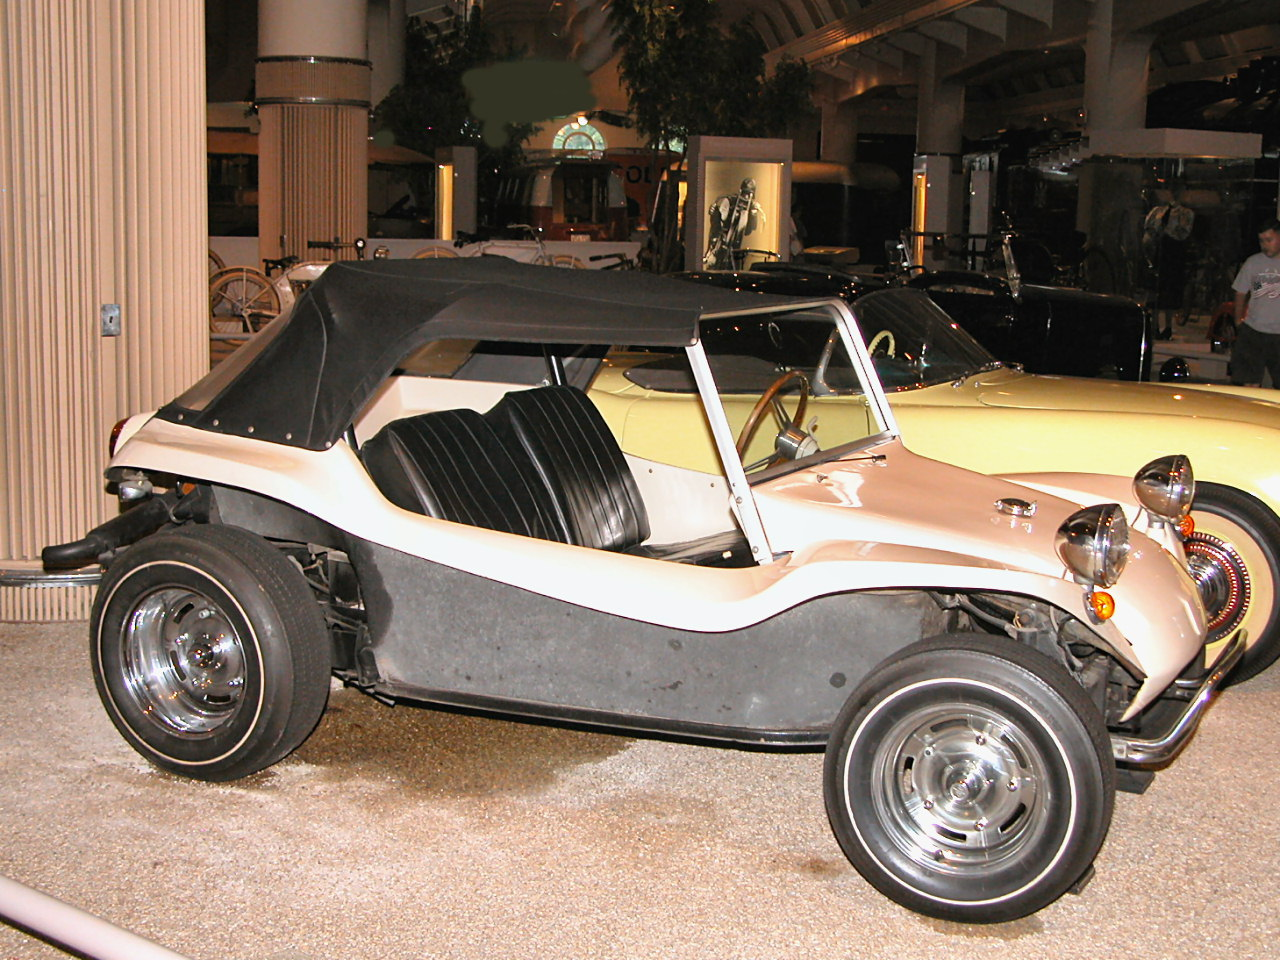 1970 Meyers Manx Dune Buggy Built By David Van De Grift Fsvr H Ford Museum N